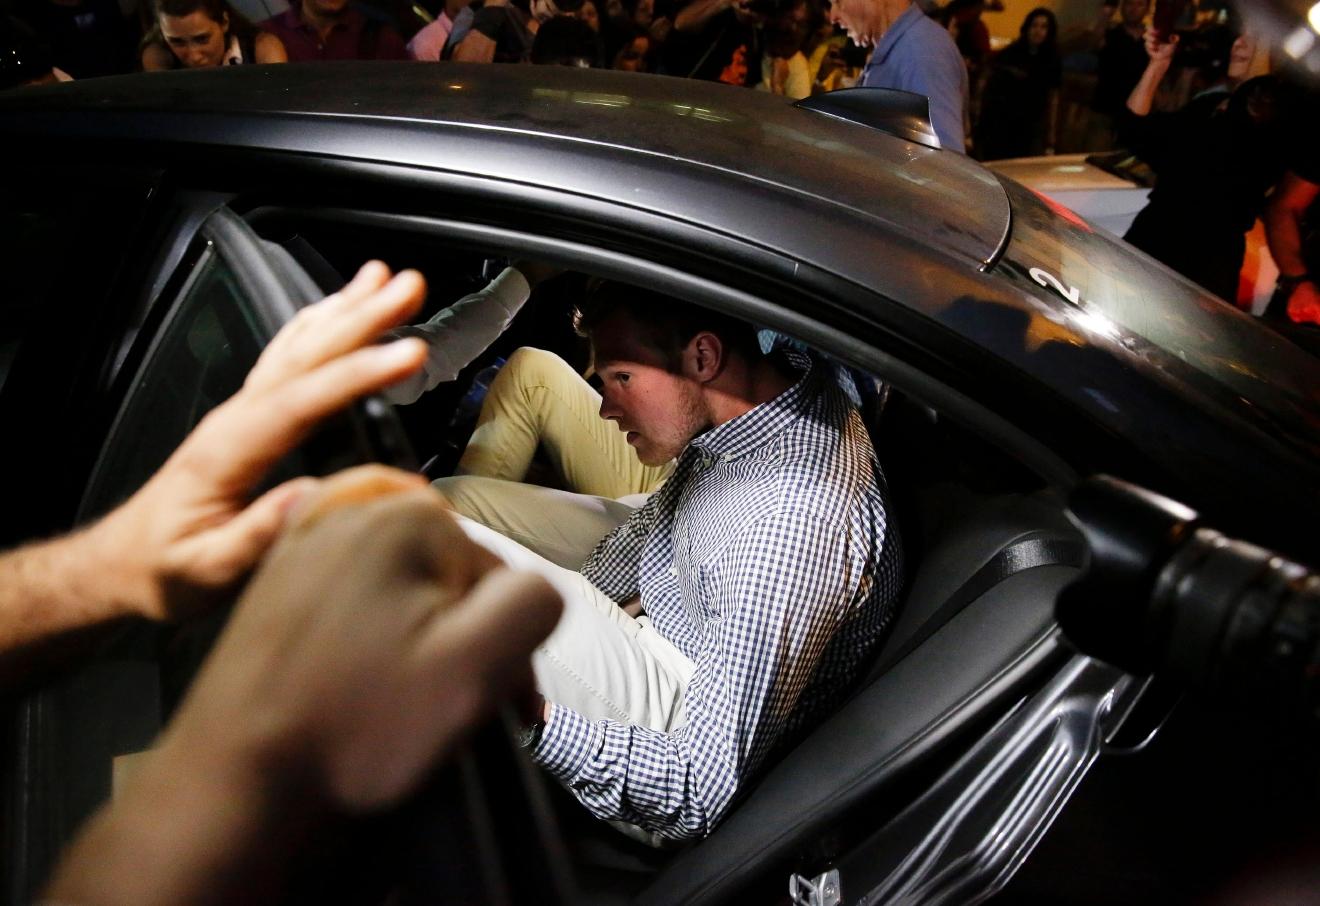 American Olympic swimmer Jack Conger gets into a car as he and fellow swimmer Gunnar Bentz leave a police station in the Leblon neighborhood of Rio de Janeiro, Brazil, Thursday, Aug. 18, 2016. The two were taken off their flight from Brazil to the U.S. on Wednesday by local authorities amid an investigation into a reported robbery targeting swimmer Ryan Lochte and his teammates. A Brazilian police officer told The Associated Press that Lochte fabricated a story about being robbed at gunpoint in Rio de Janeiro. (AP Photo/Leo Correa)